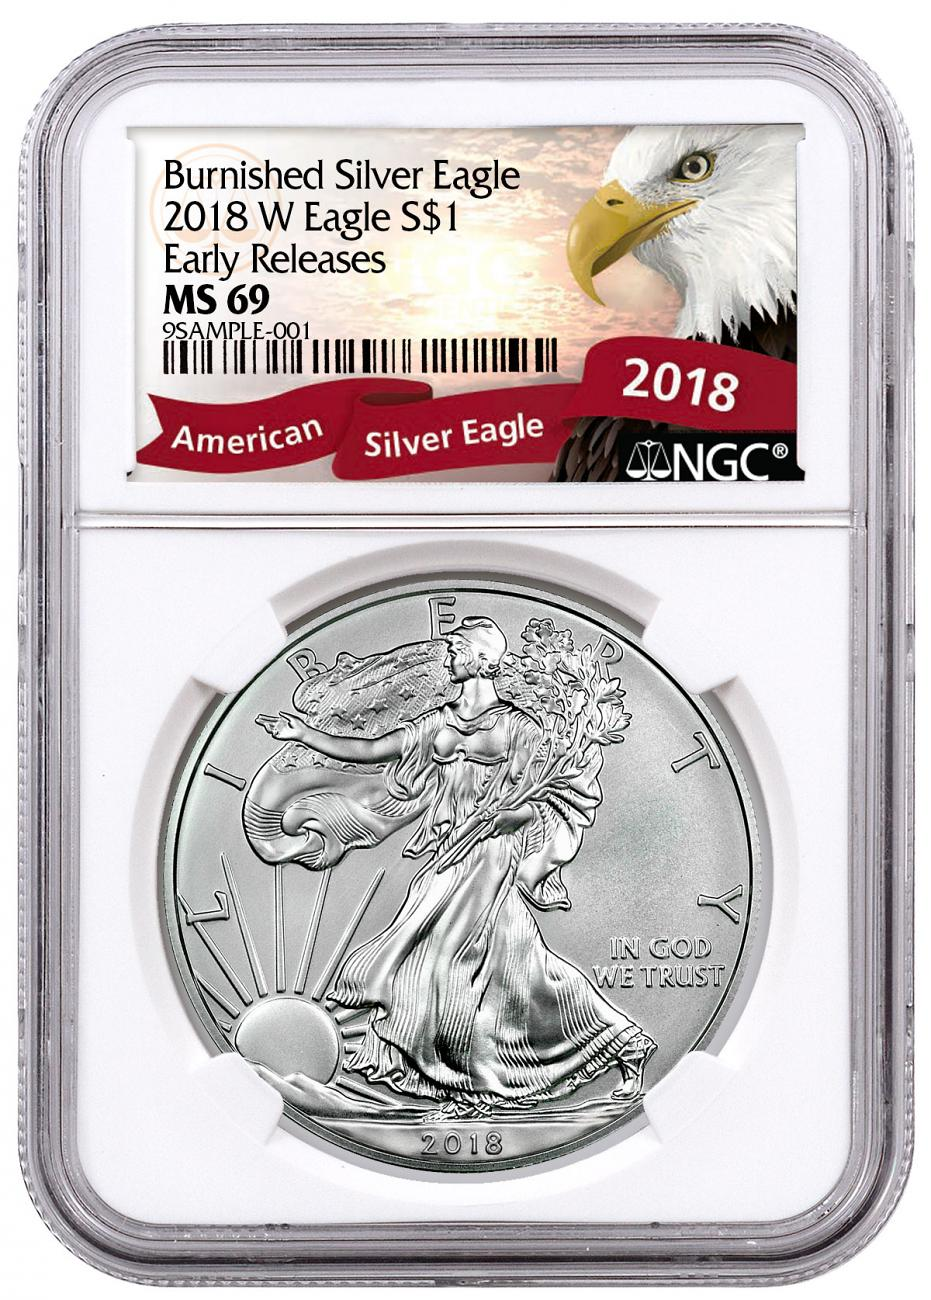 2018-W Burnished American Silver Eagle NGC MS69 ER Exclusive Eagle Label